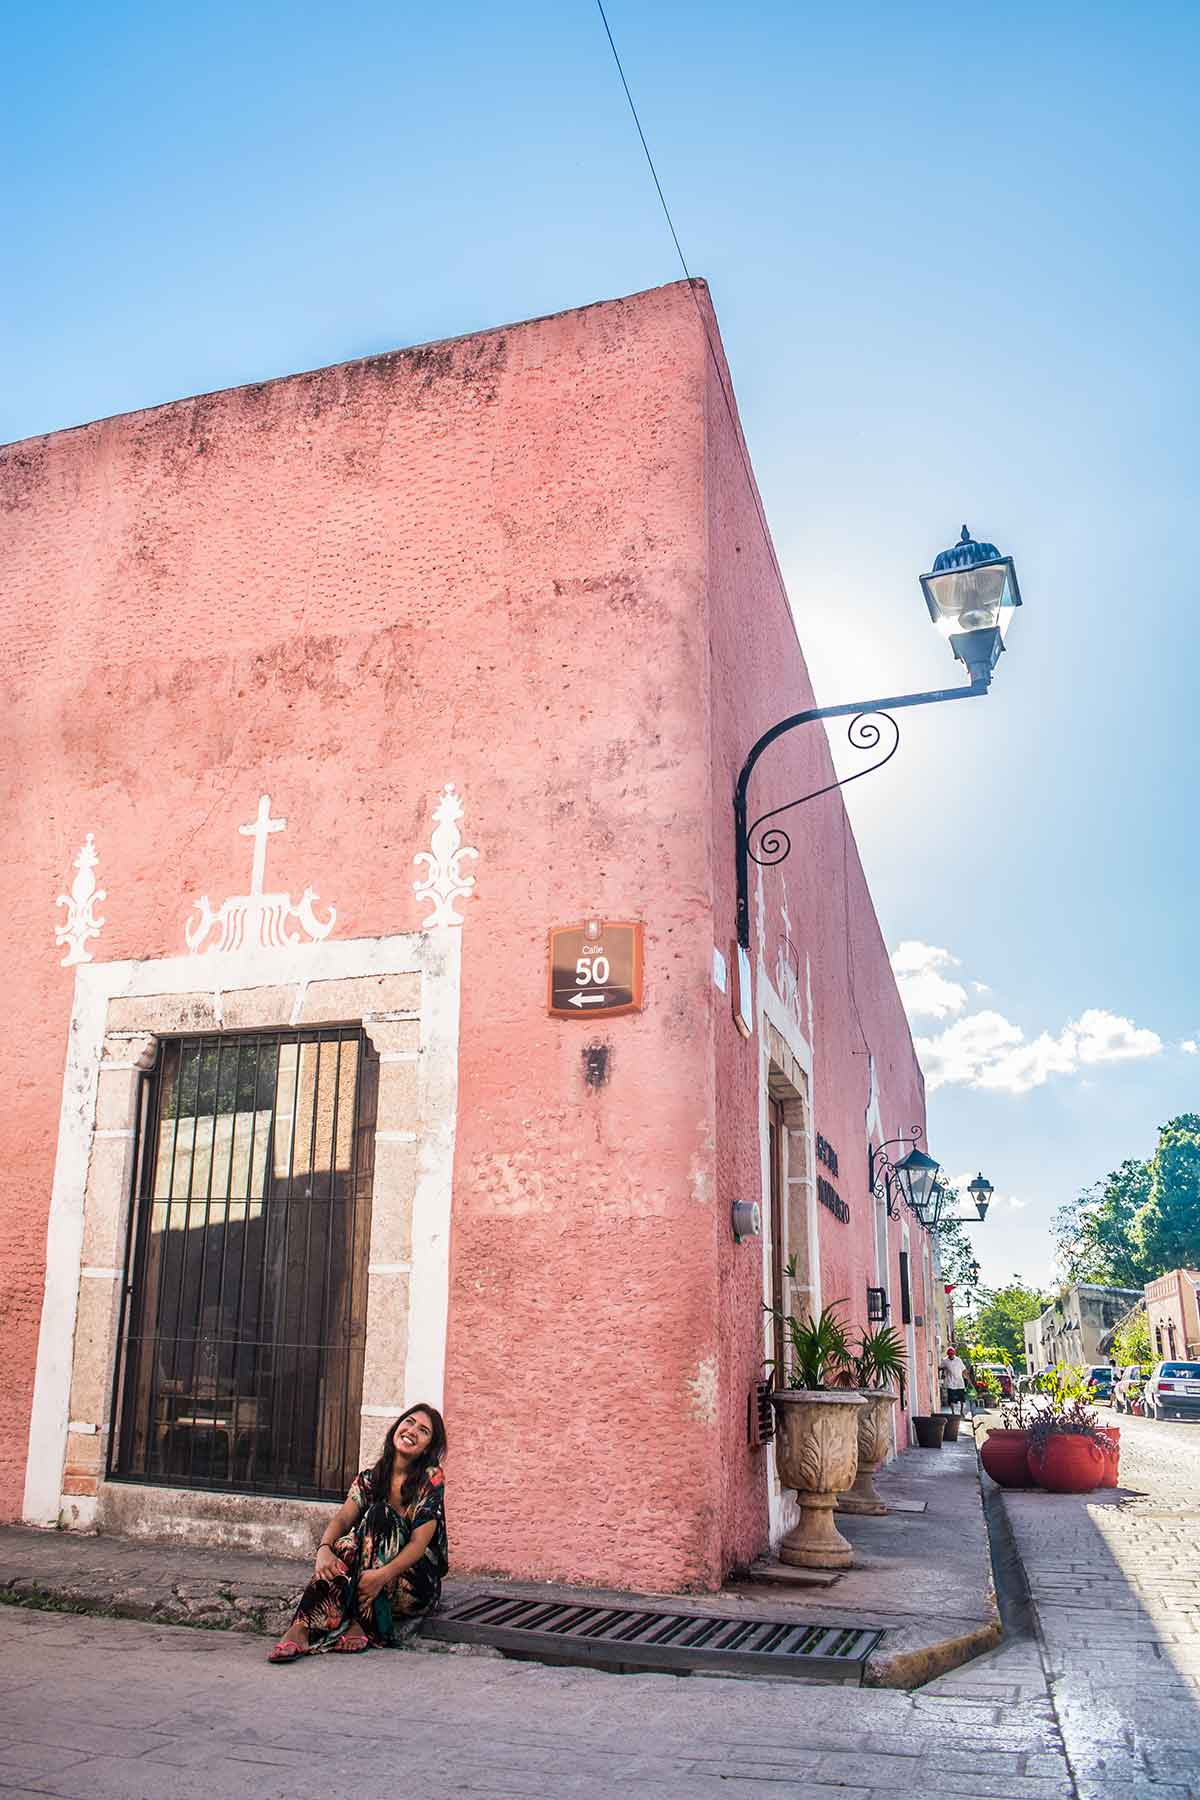 20 EPIC Valladolid Instagram spots for travelling Mexico. A woman sits on a street corner of Calle 50 with a pink building behind her